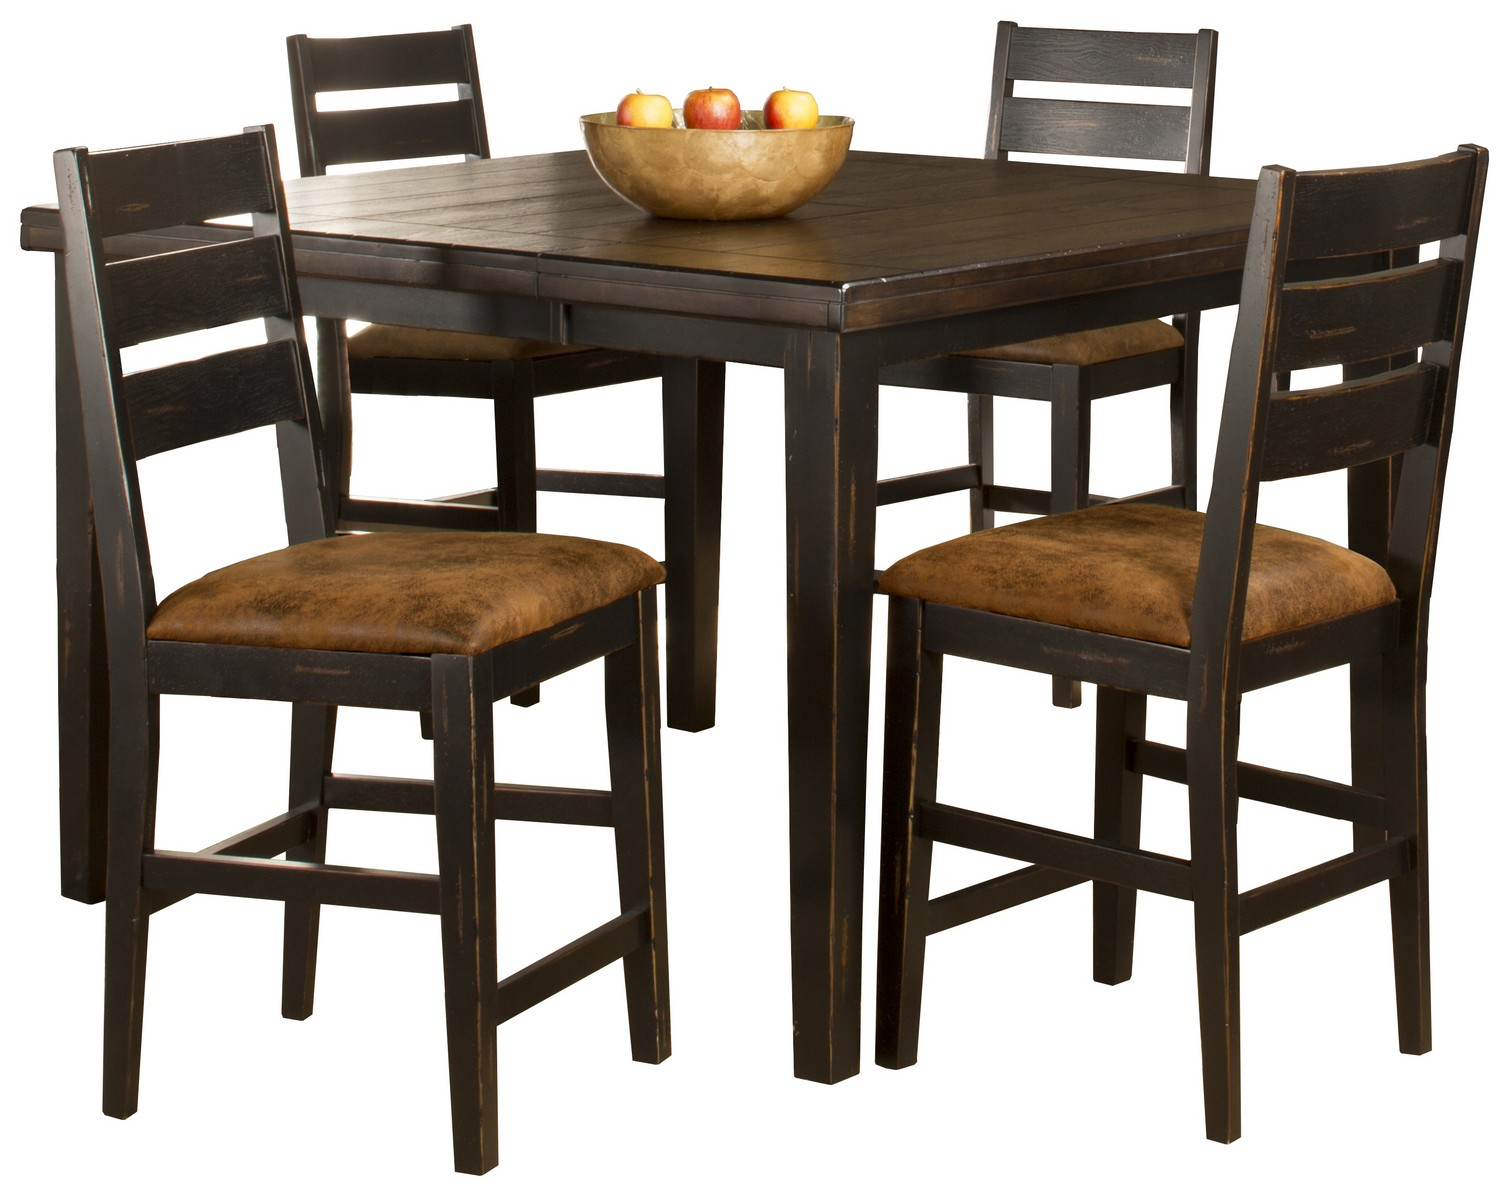 Hillsdale Killarney 5-Piece Counter Height Dining with Ladder Back Stools - Black/ Antique Brown